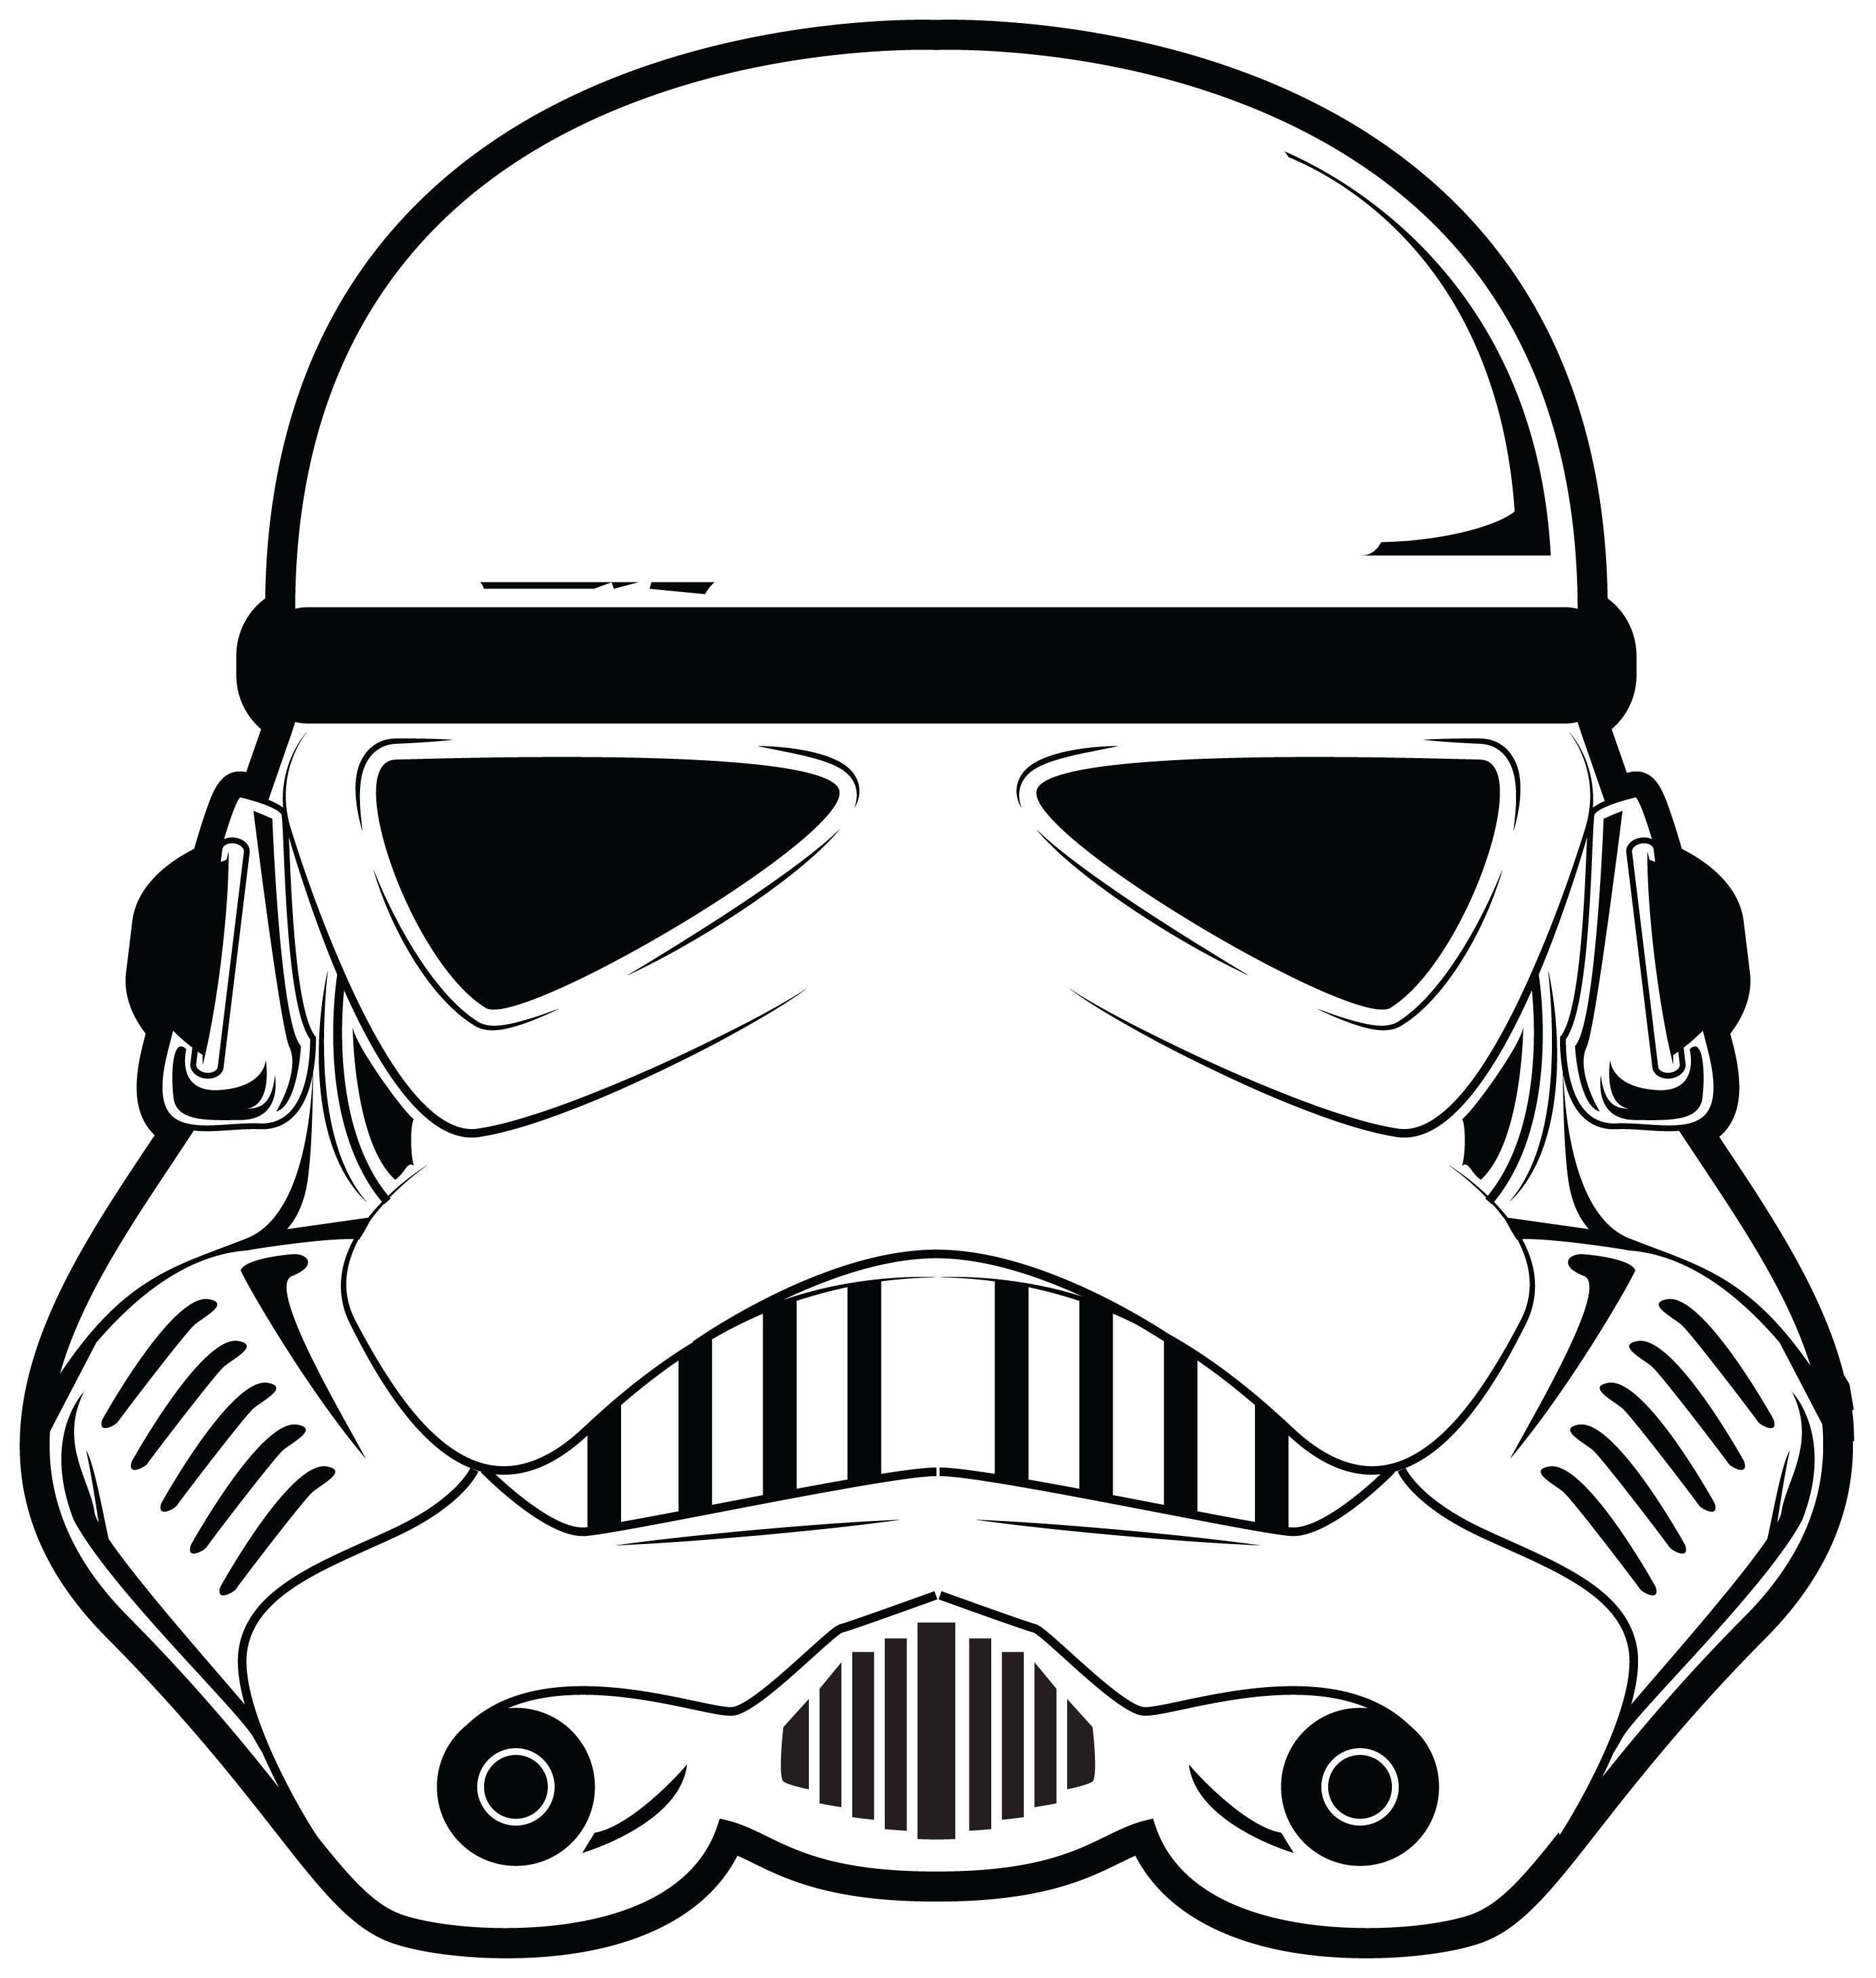 clone wars drawings  free download on clipartmag